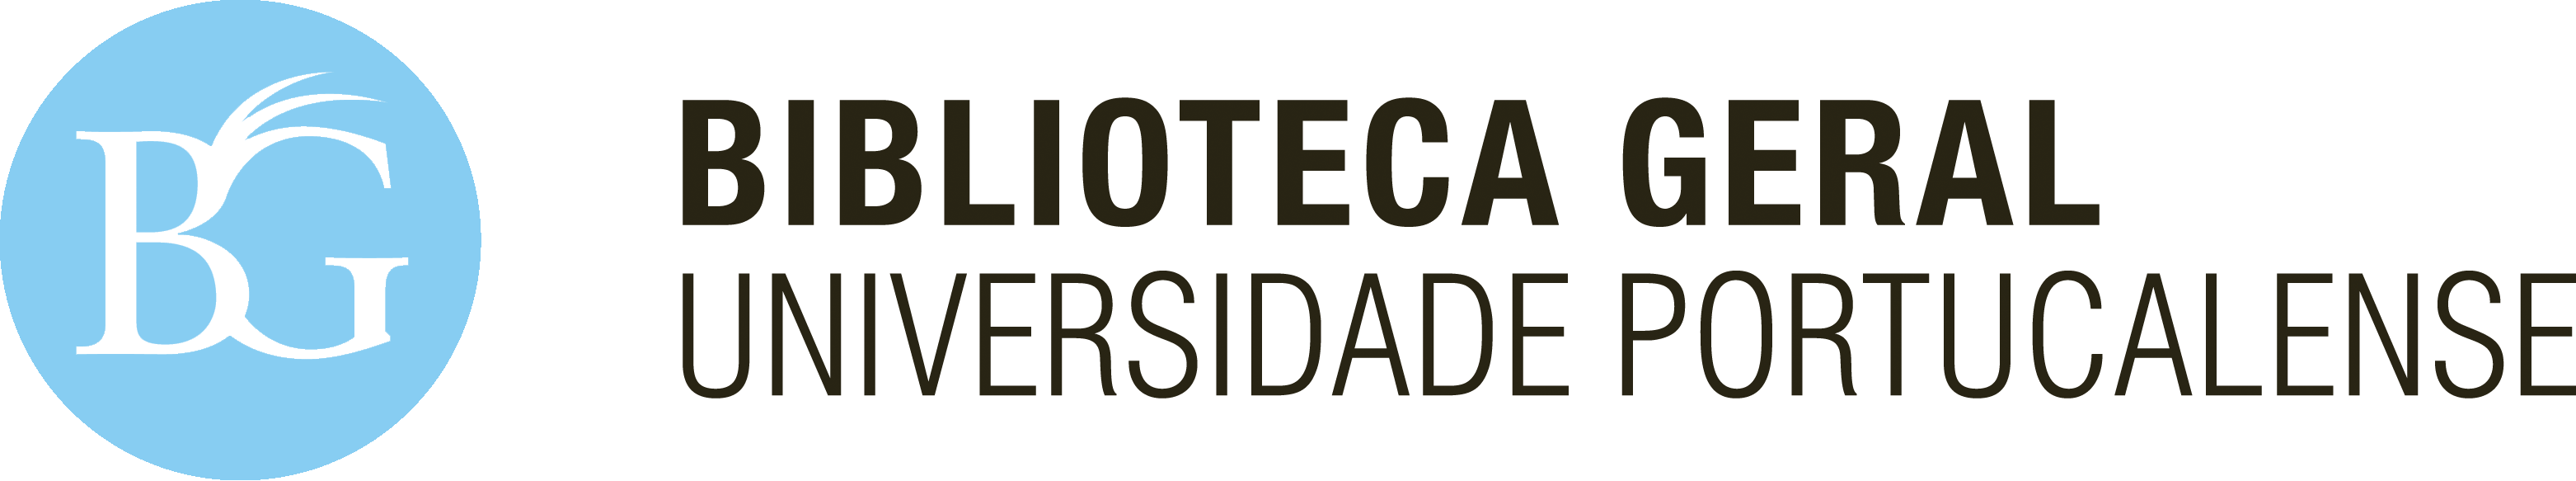 Universidade portucalense idh catalog purchase suggestions fandeluxe Choice Image